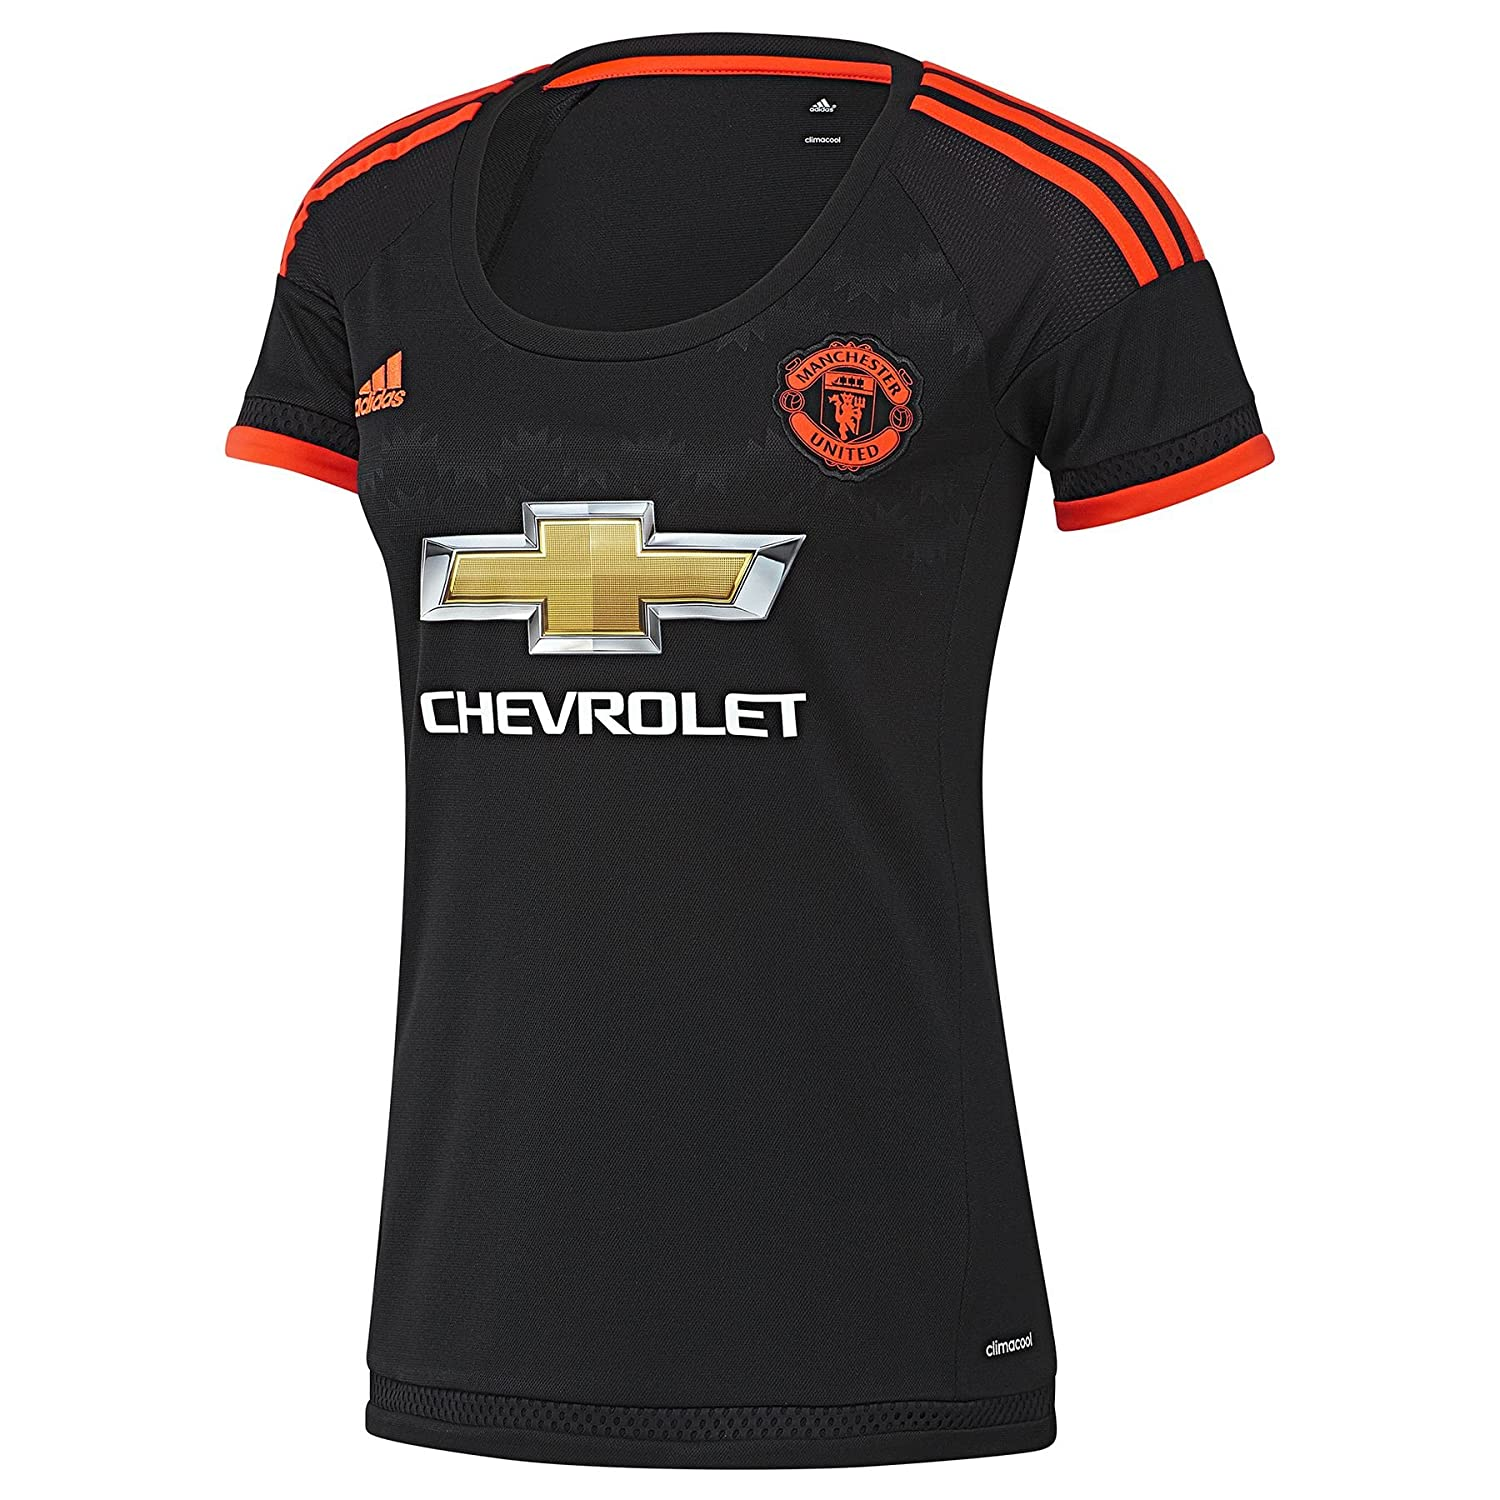 Adidas 2015-2016 Man Utd Damenschuhe Third Football Soccer T-Shirt Trikot